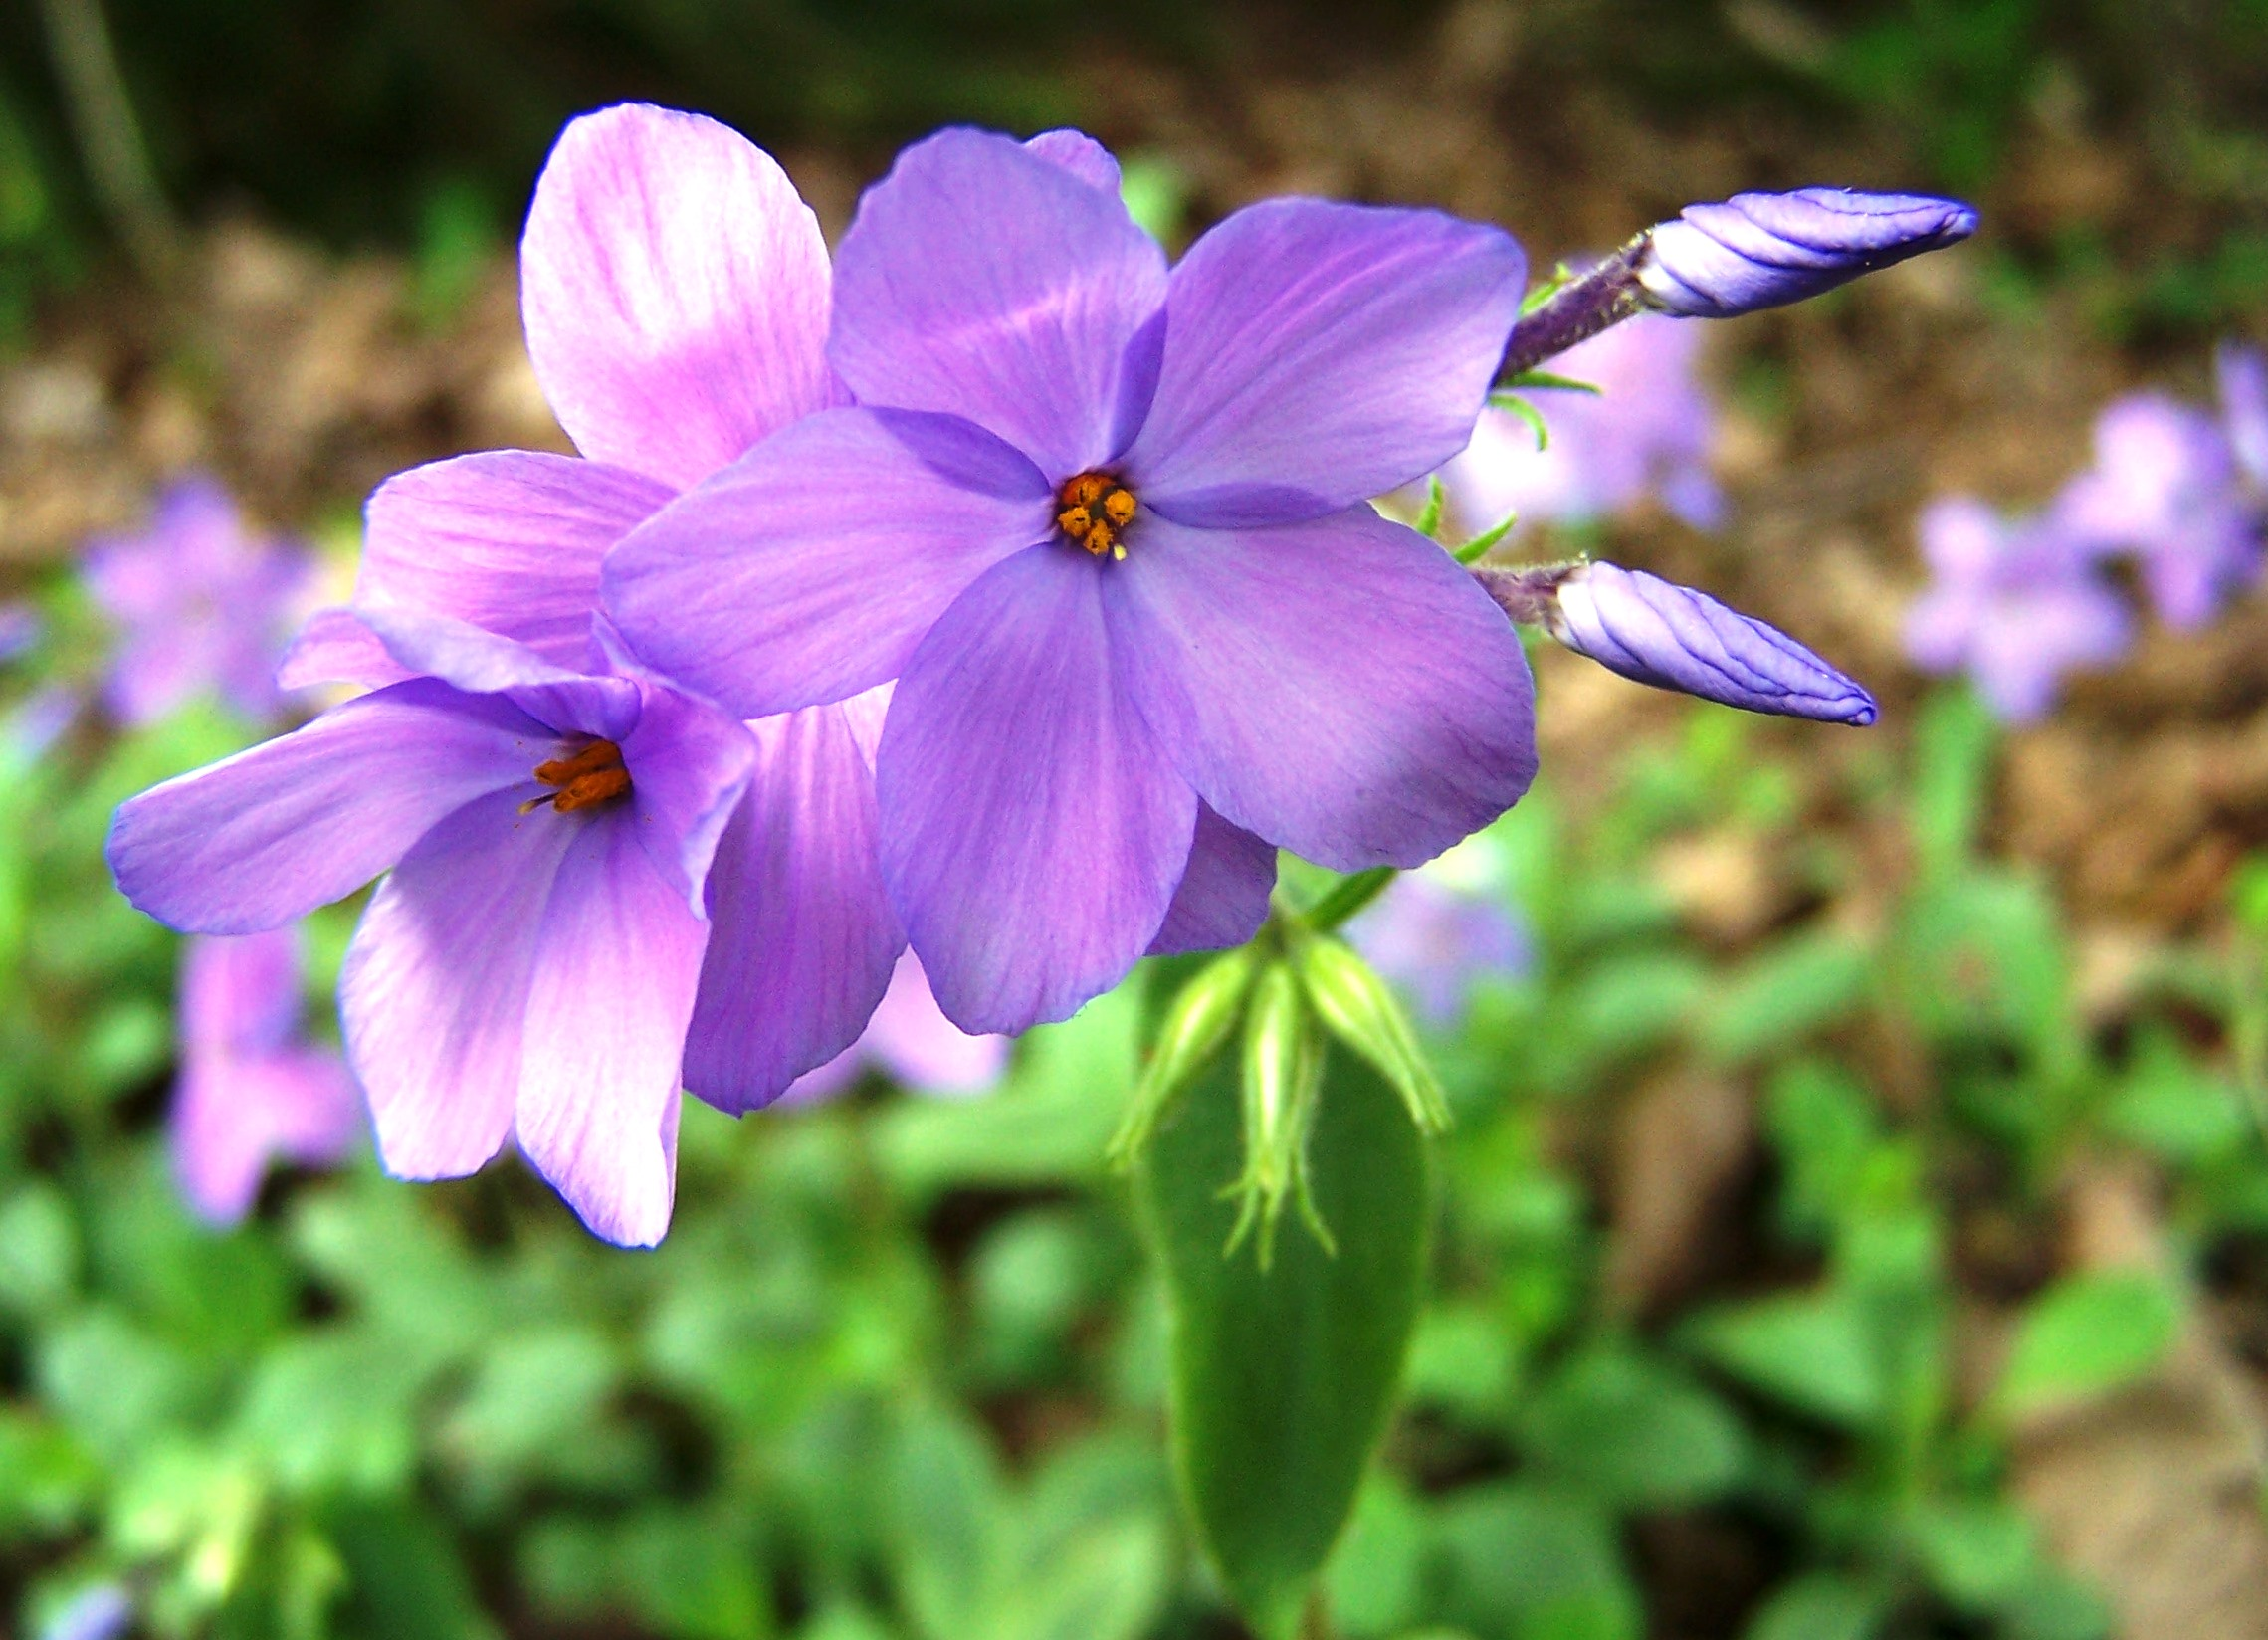 Phlox stolonifera flowers and buds.jpg